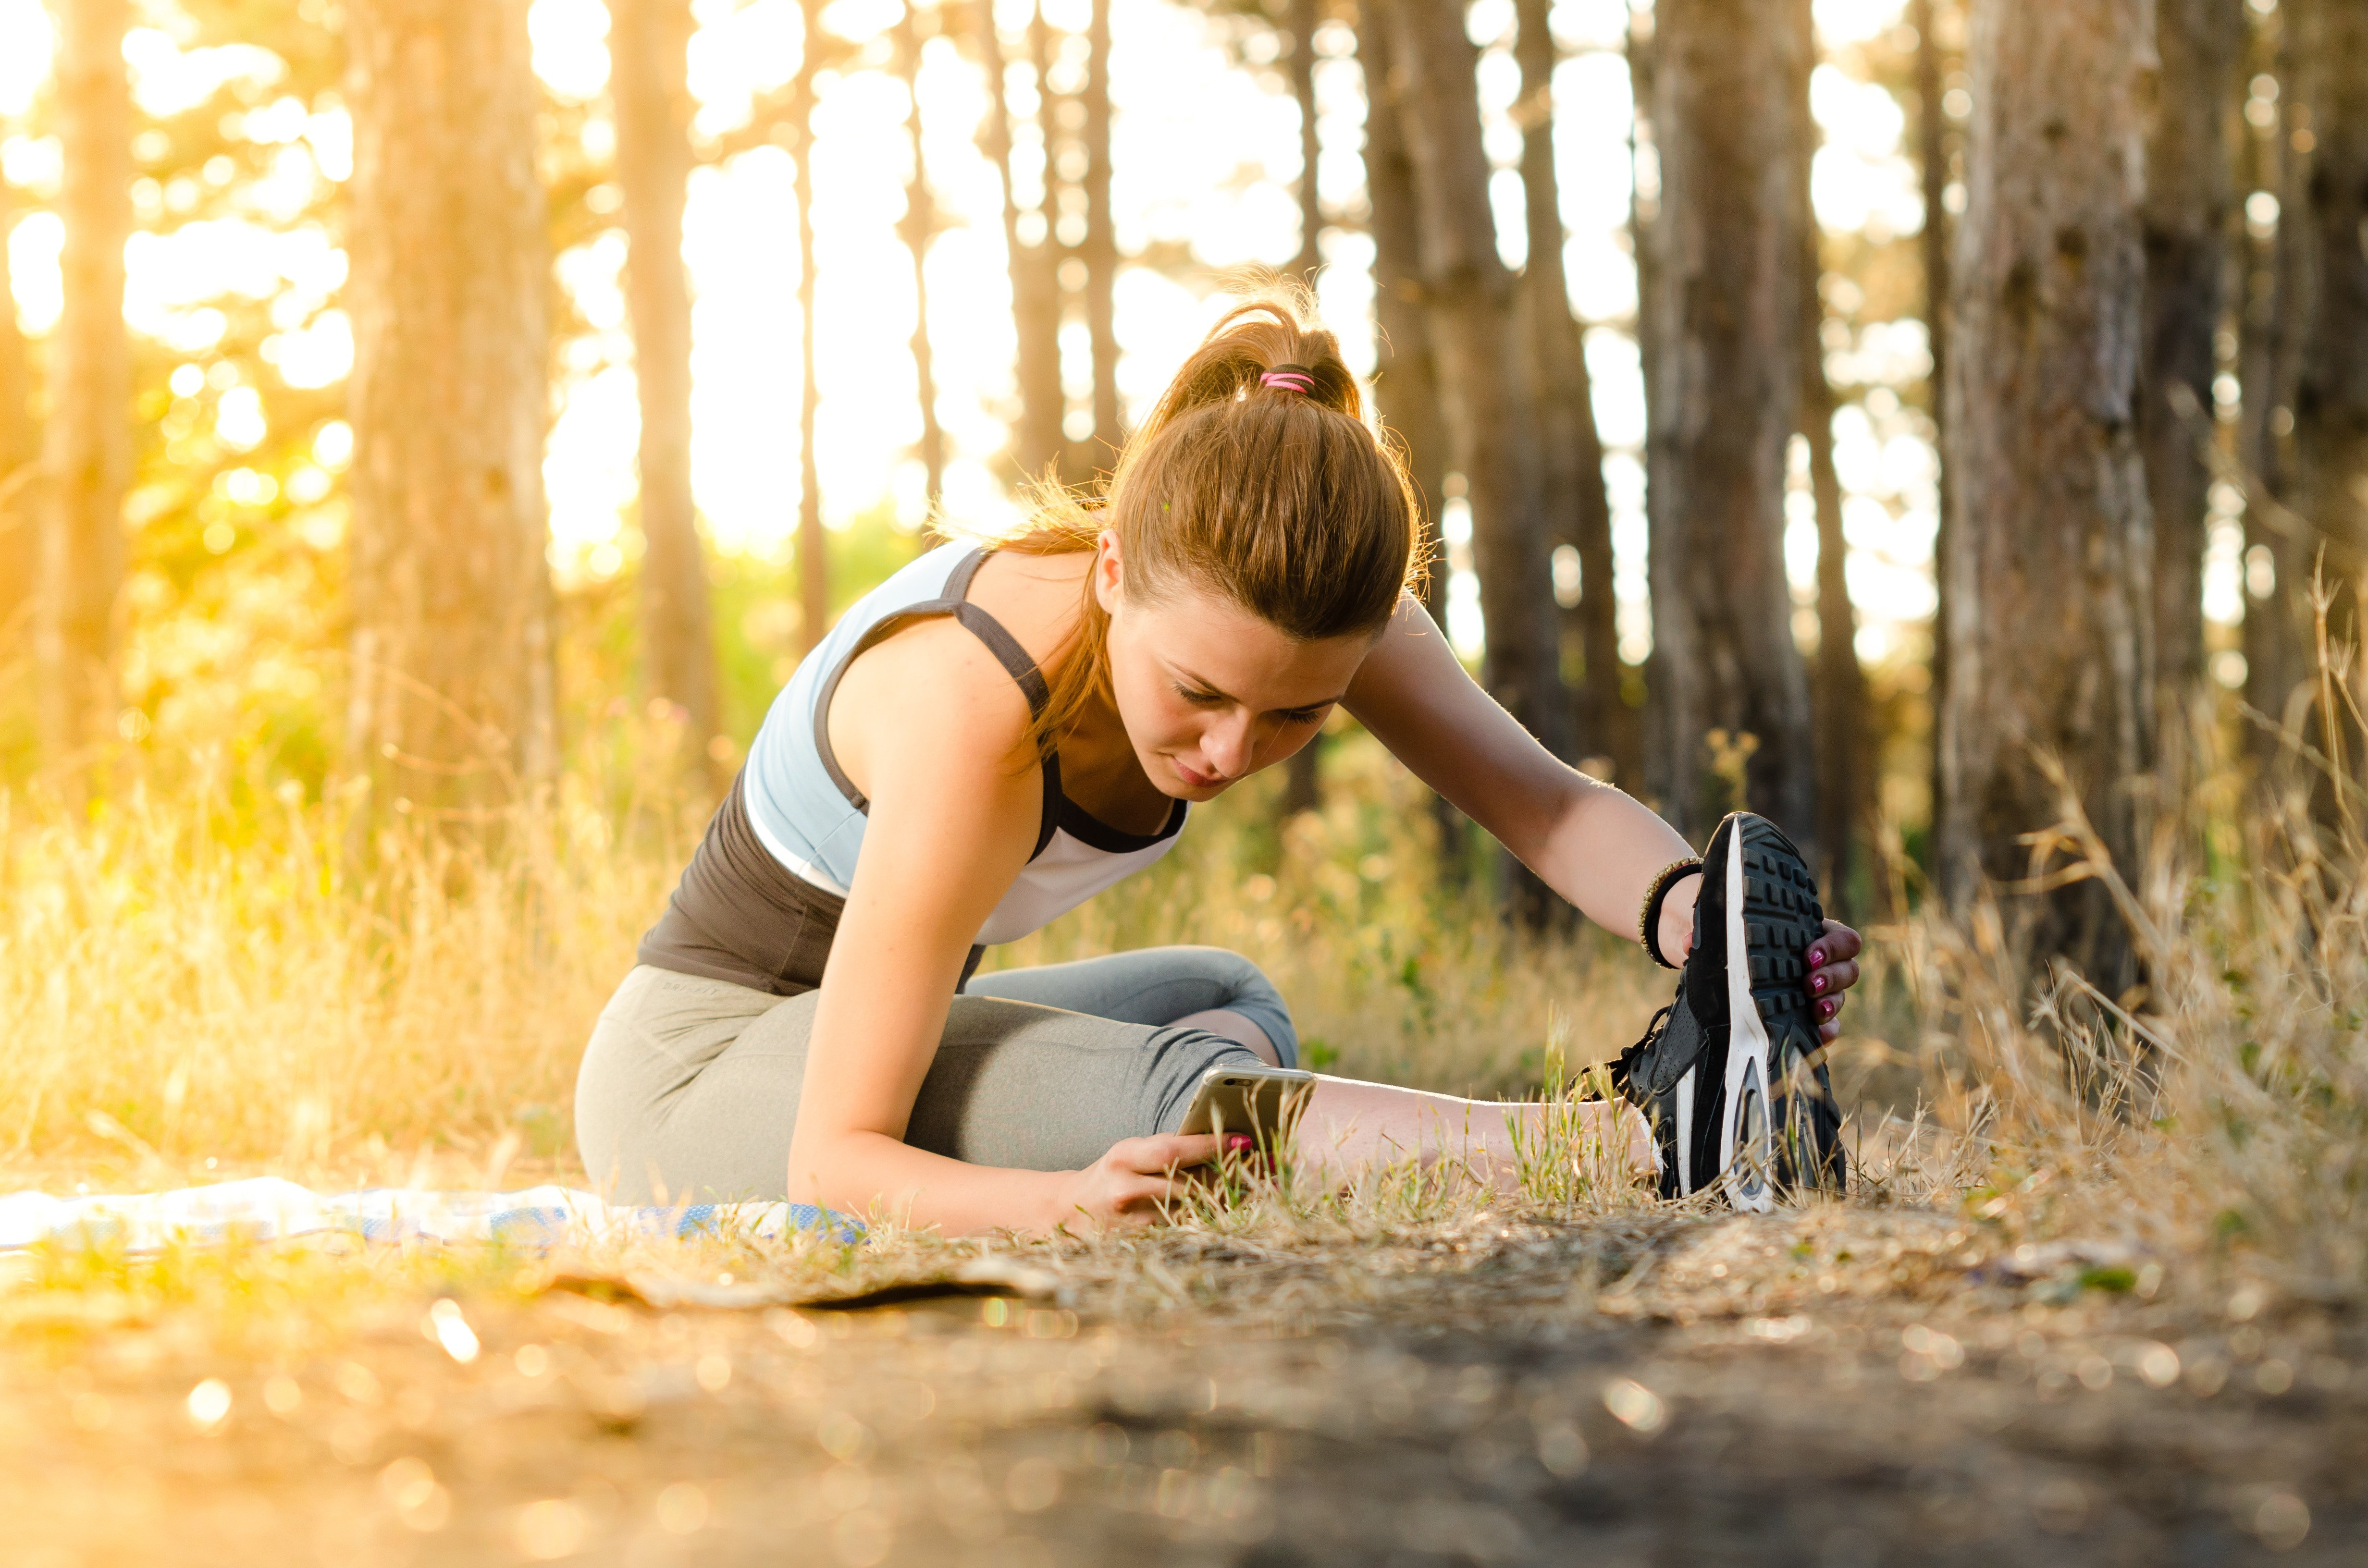 Vein Disease and Runners